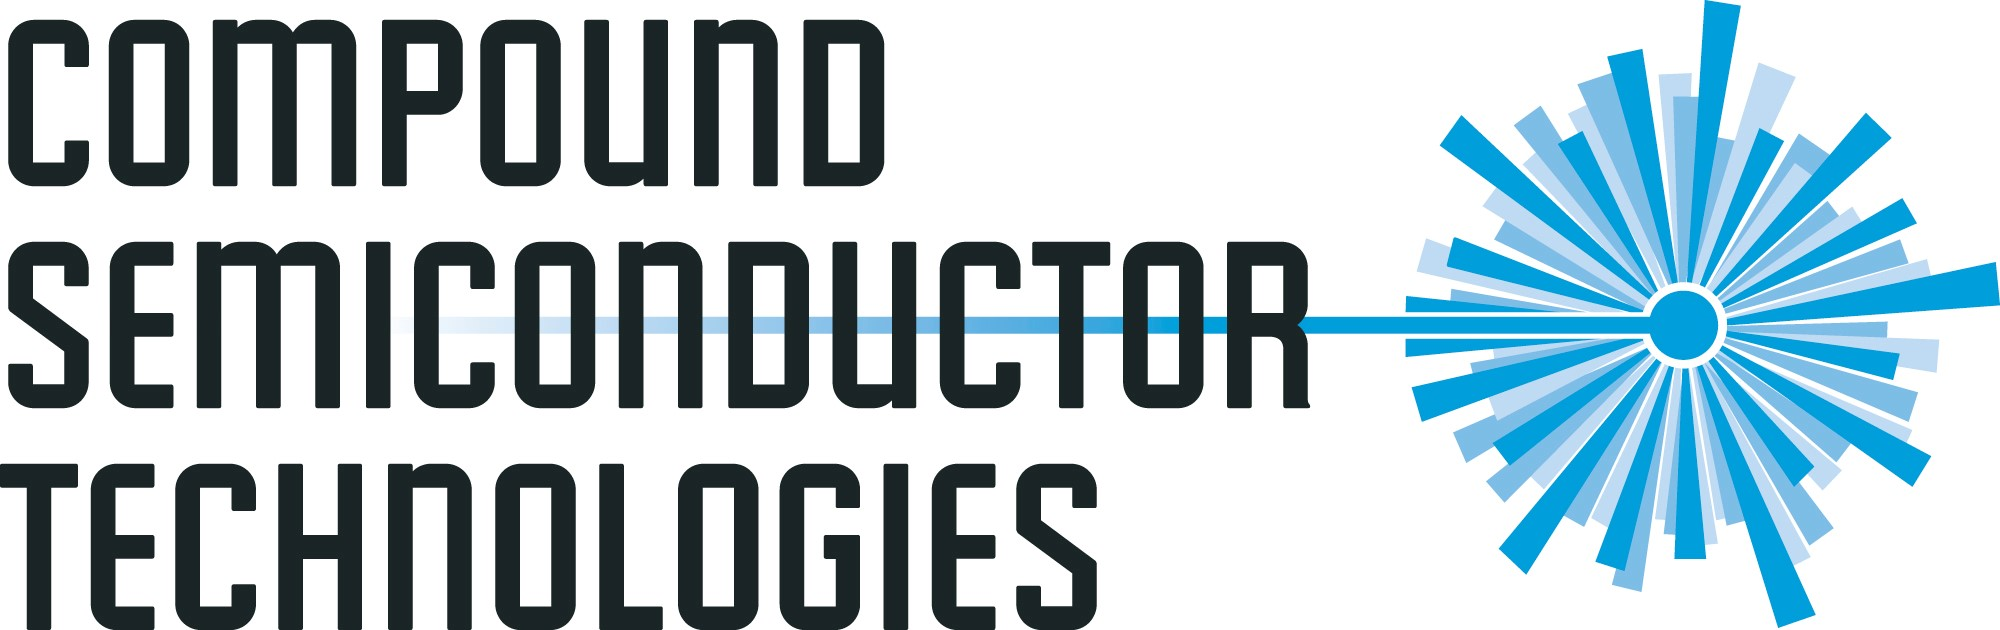 Compound Semiconductor Technologies